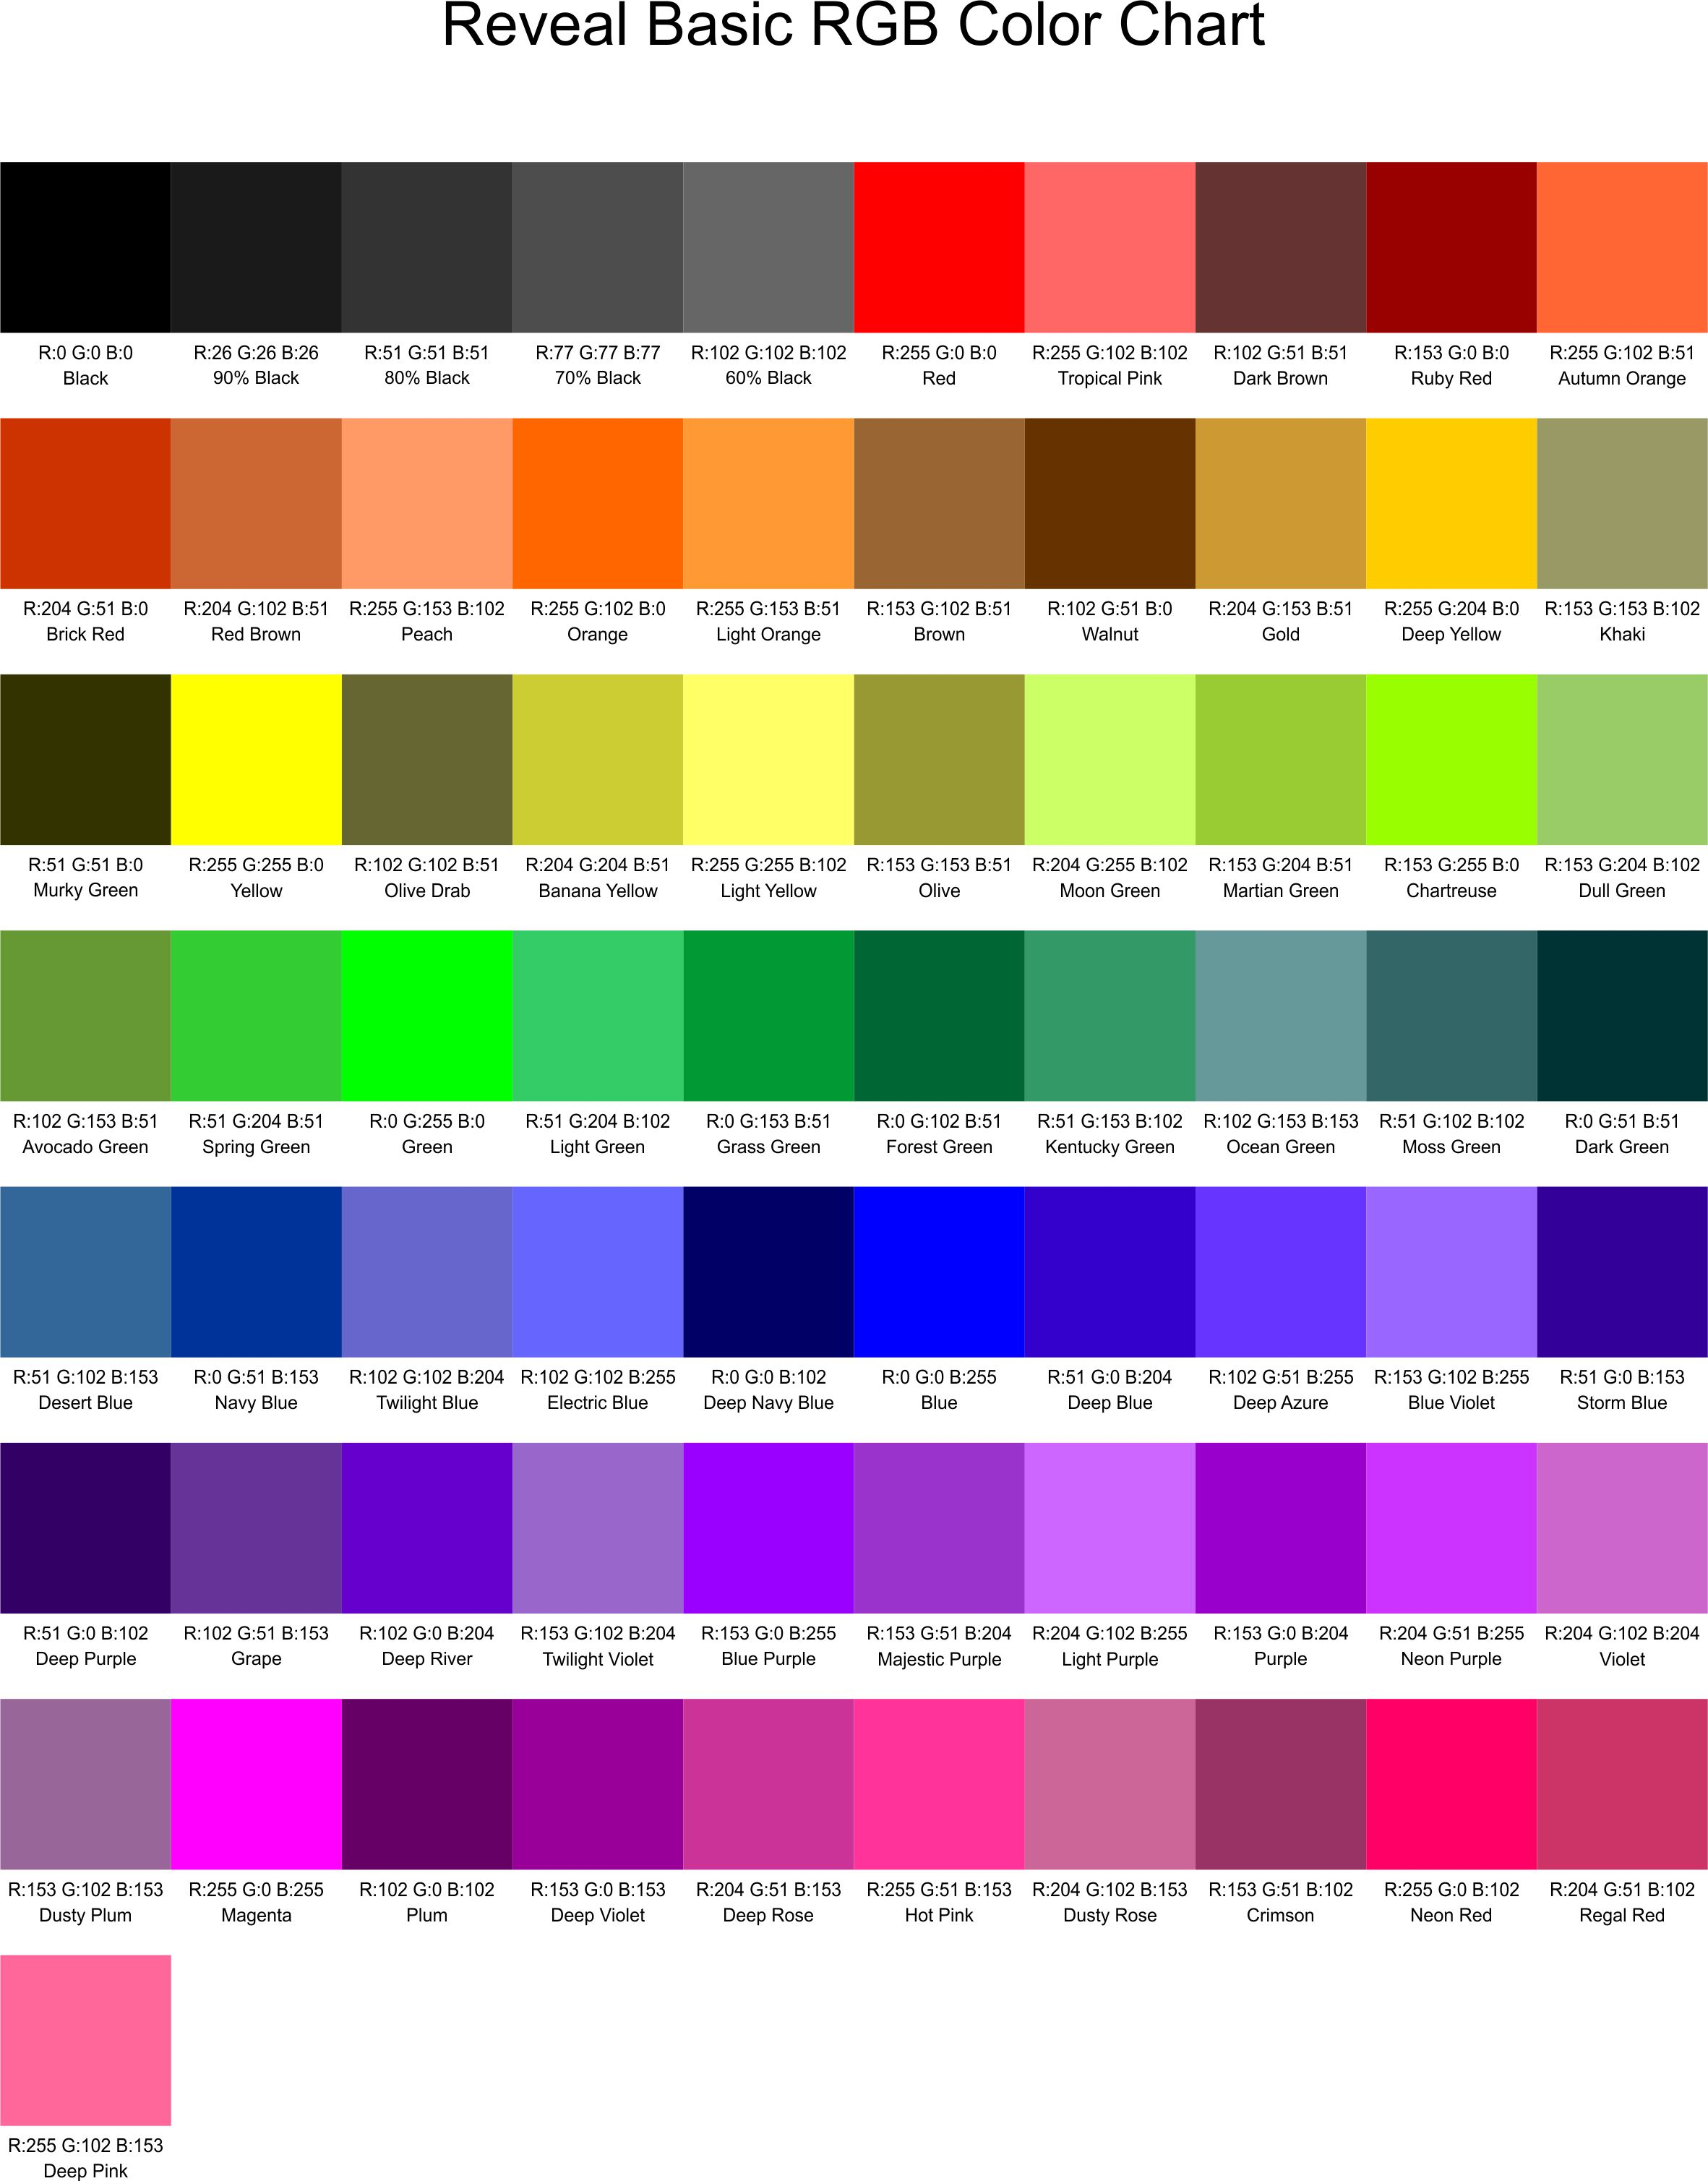 Amazing Reveal Basic RGB Color Chart.cdr